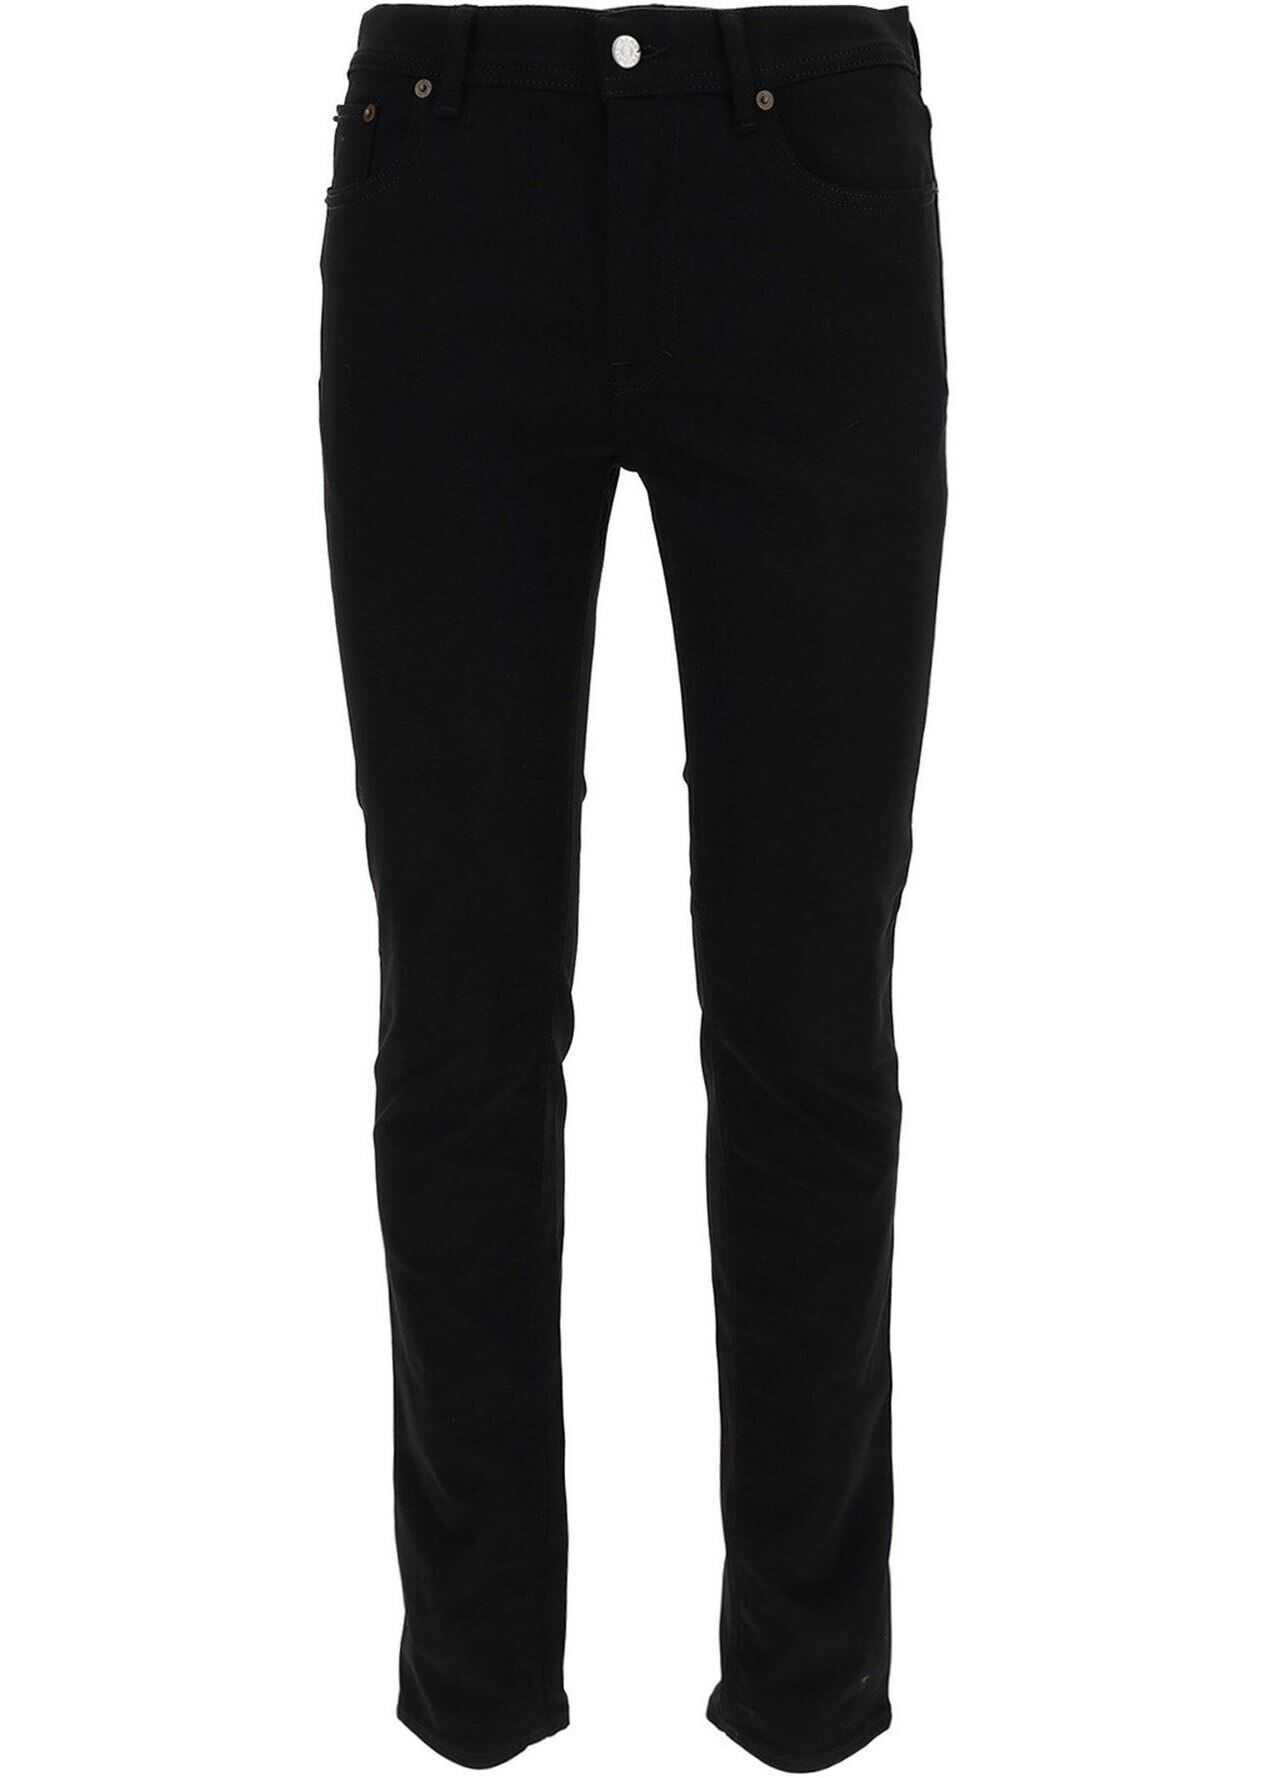 Acne Studios Denim Jeans In Black Black imagine